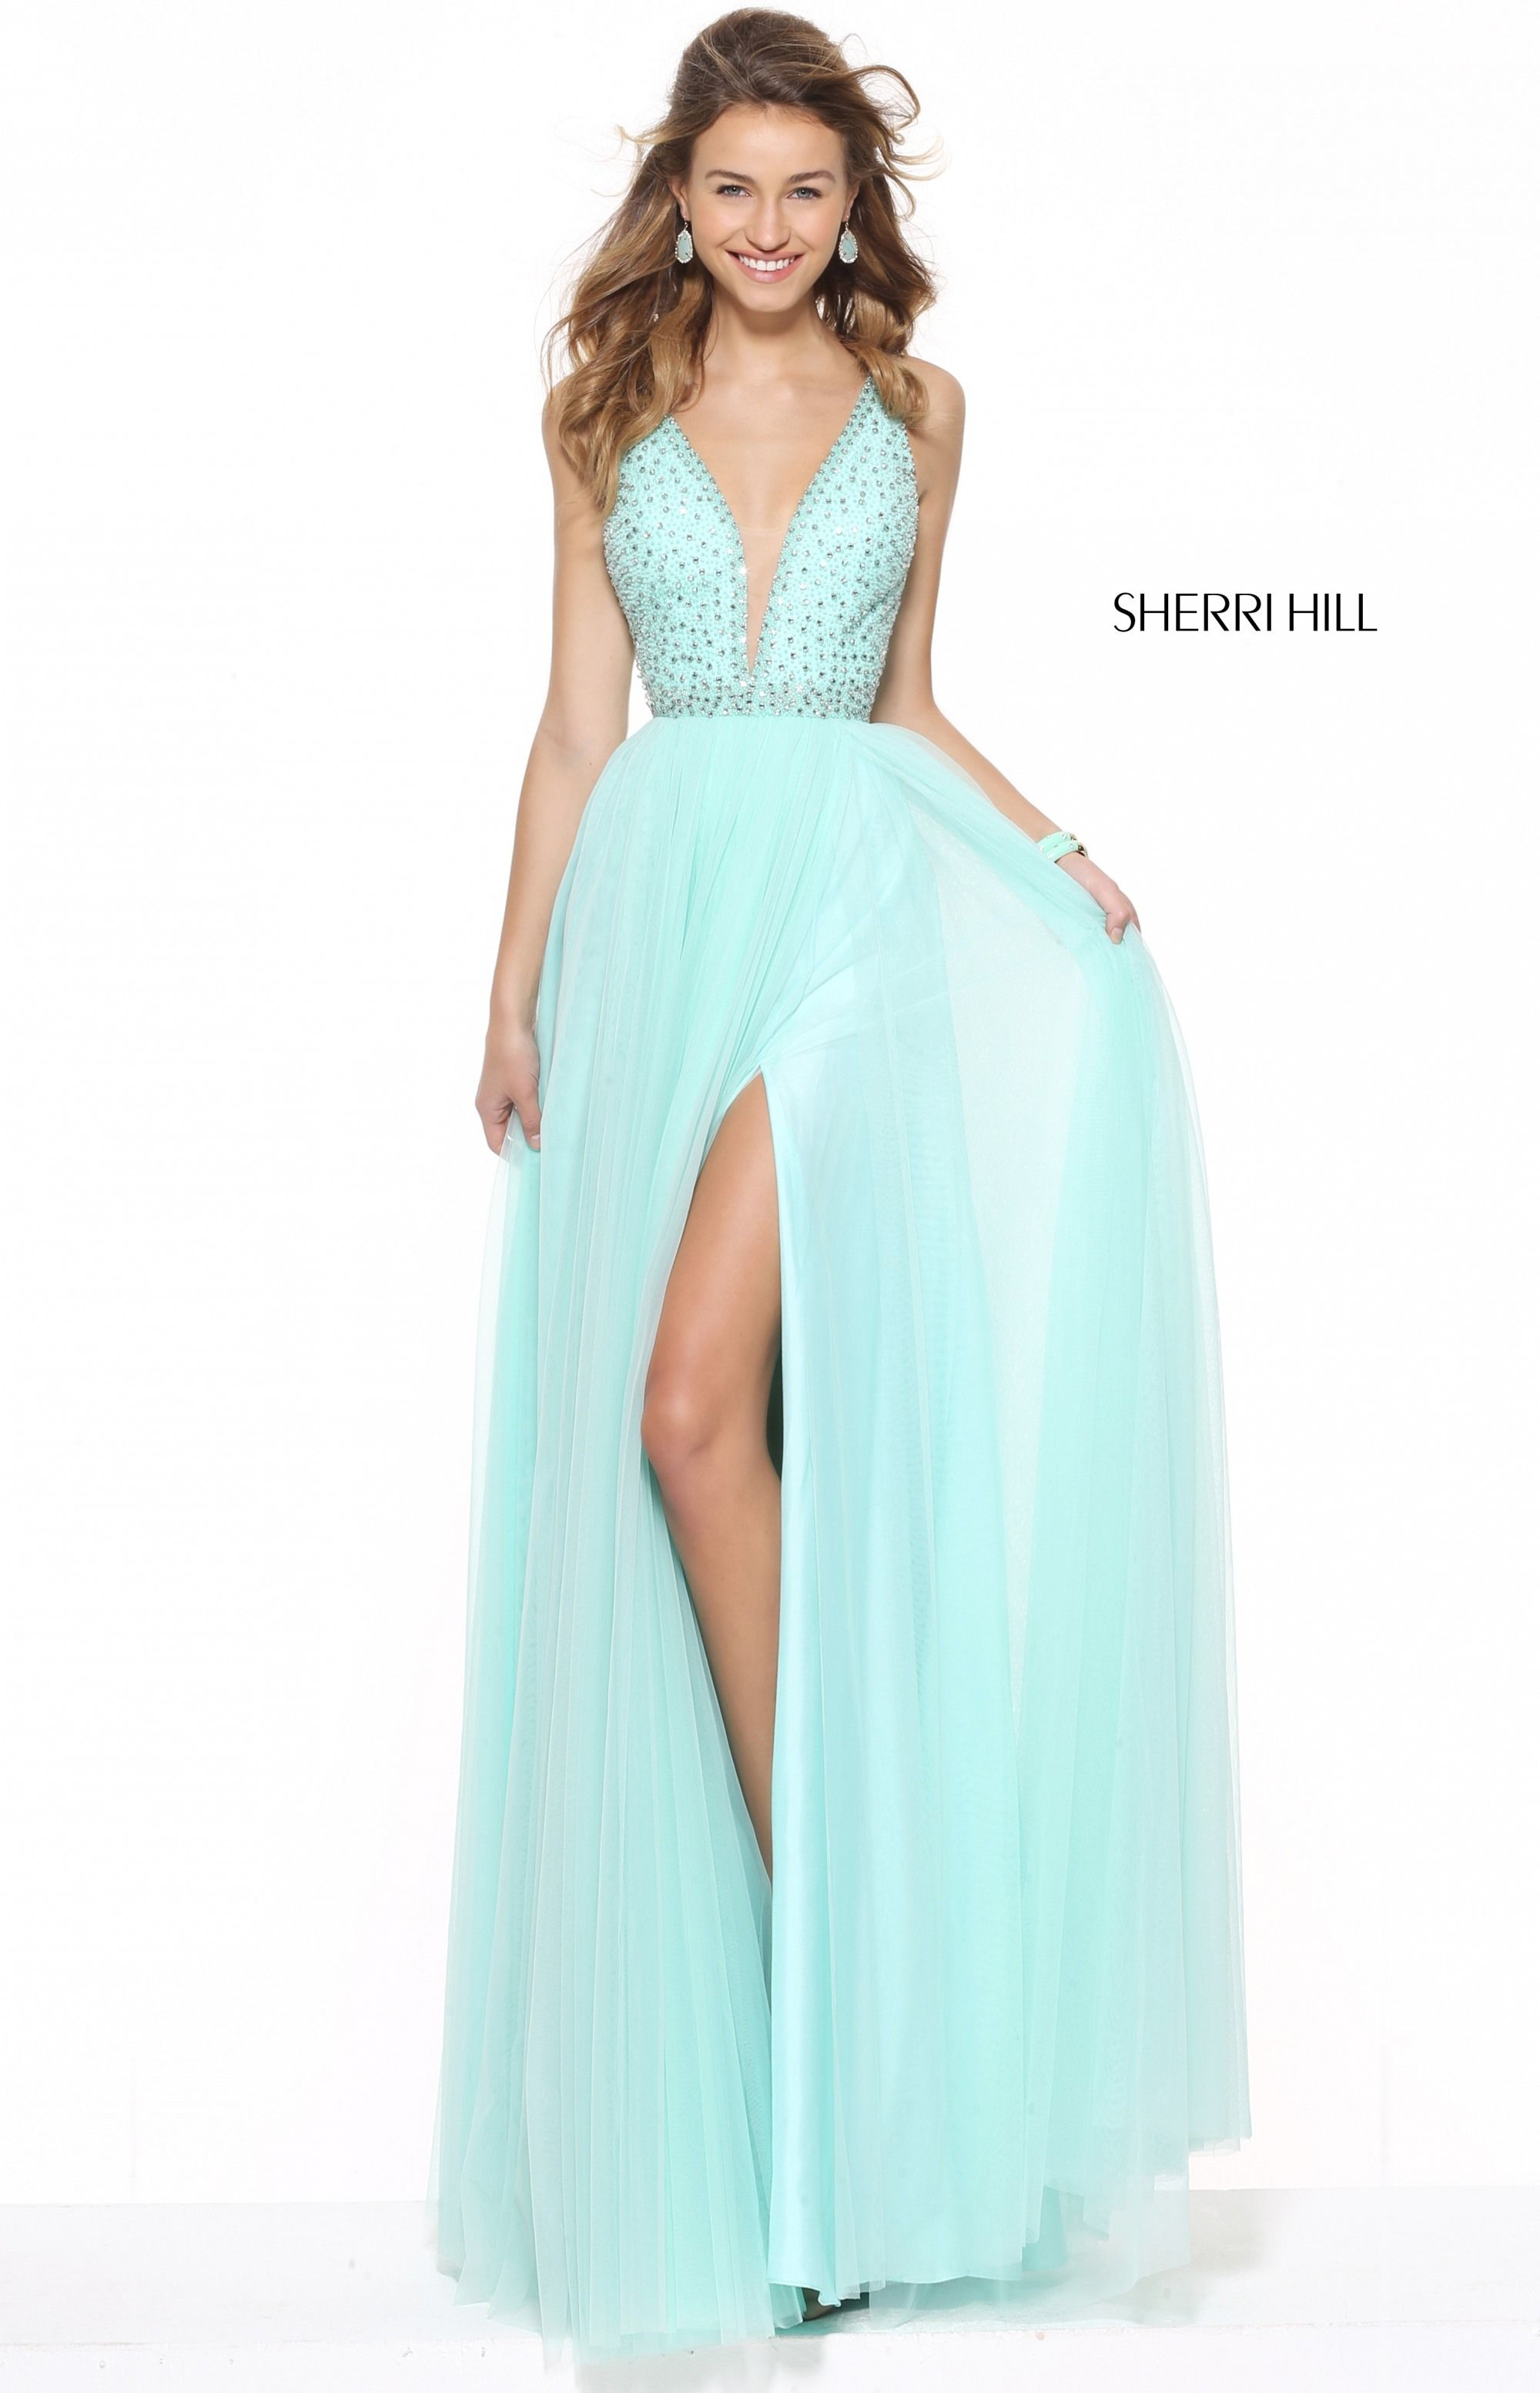 Sherri Hill 50868 - International Prom Association | Sherri Hill ...